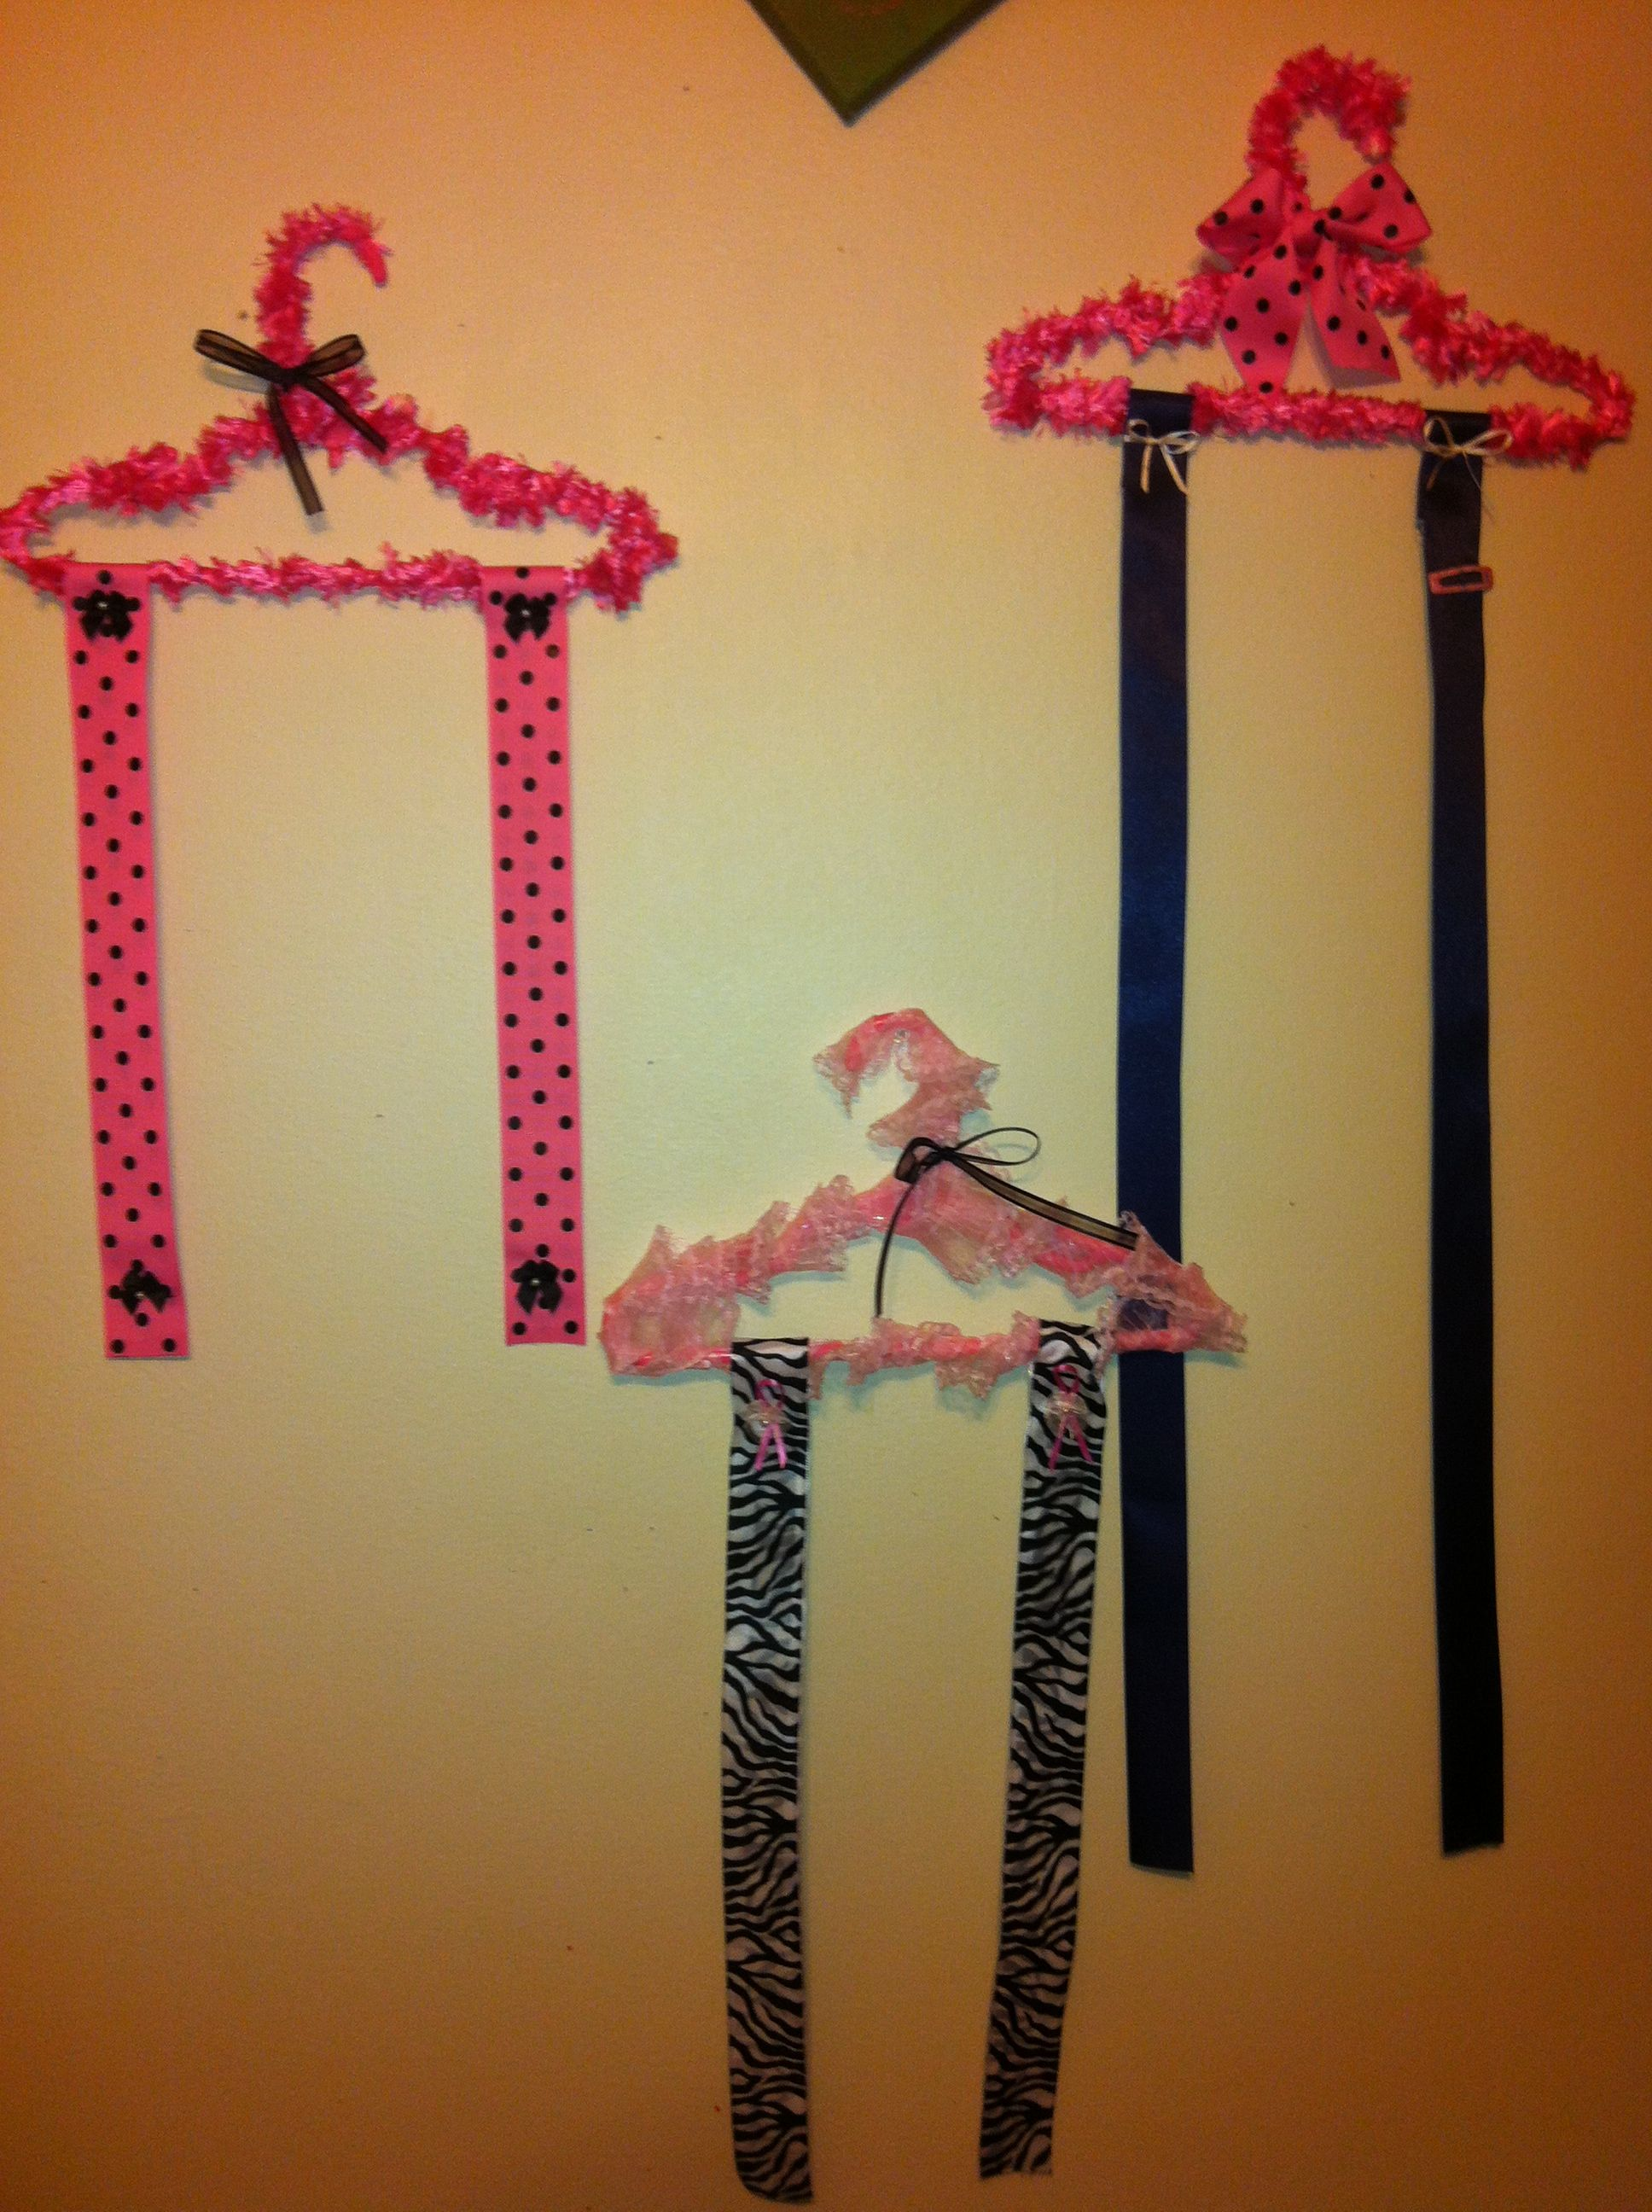 Pin By Michelle Voisin On My Ideas Girls Hair Bows Holder Girl Hair Bows Diy Hair Bow Holder